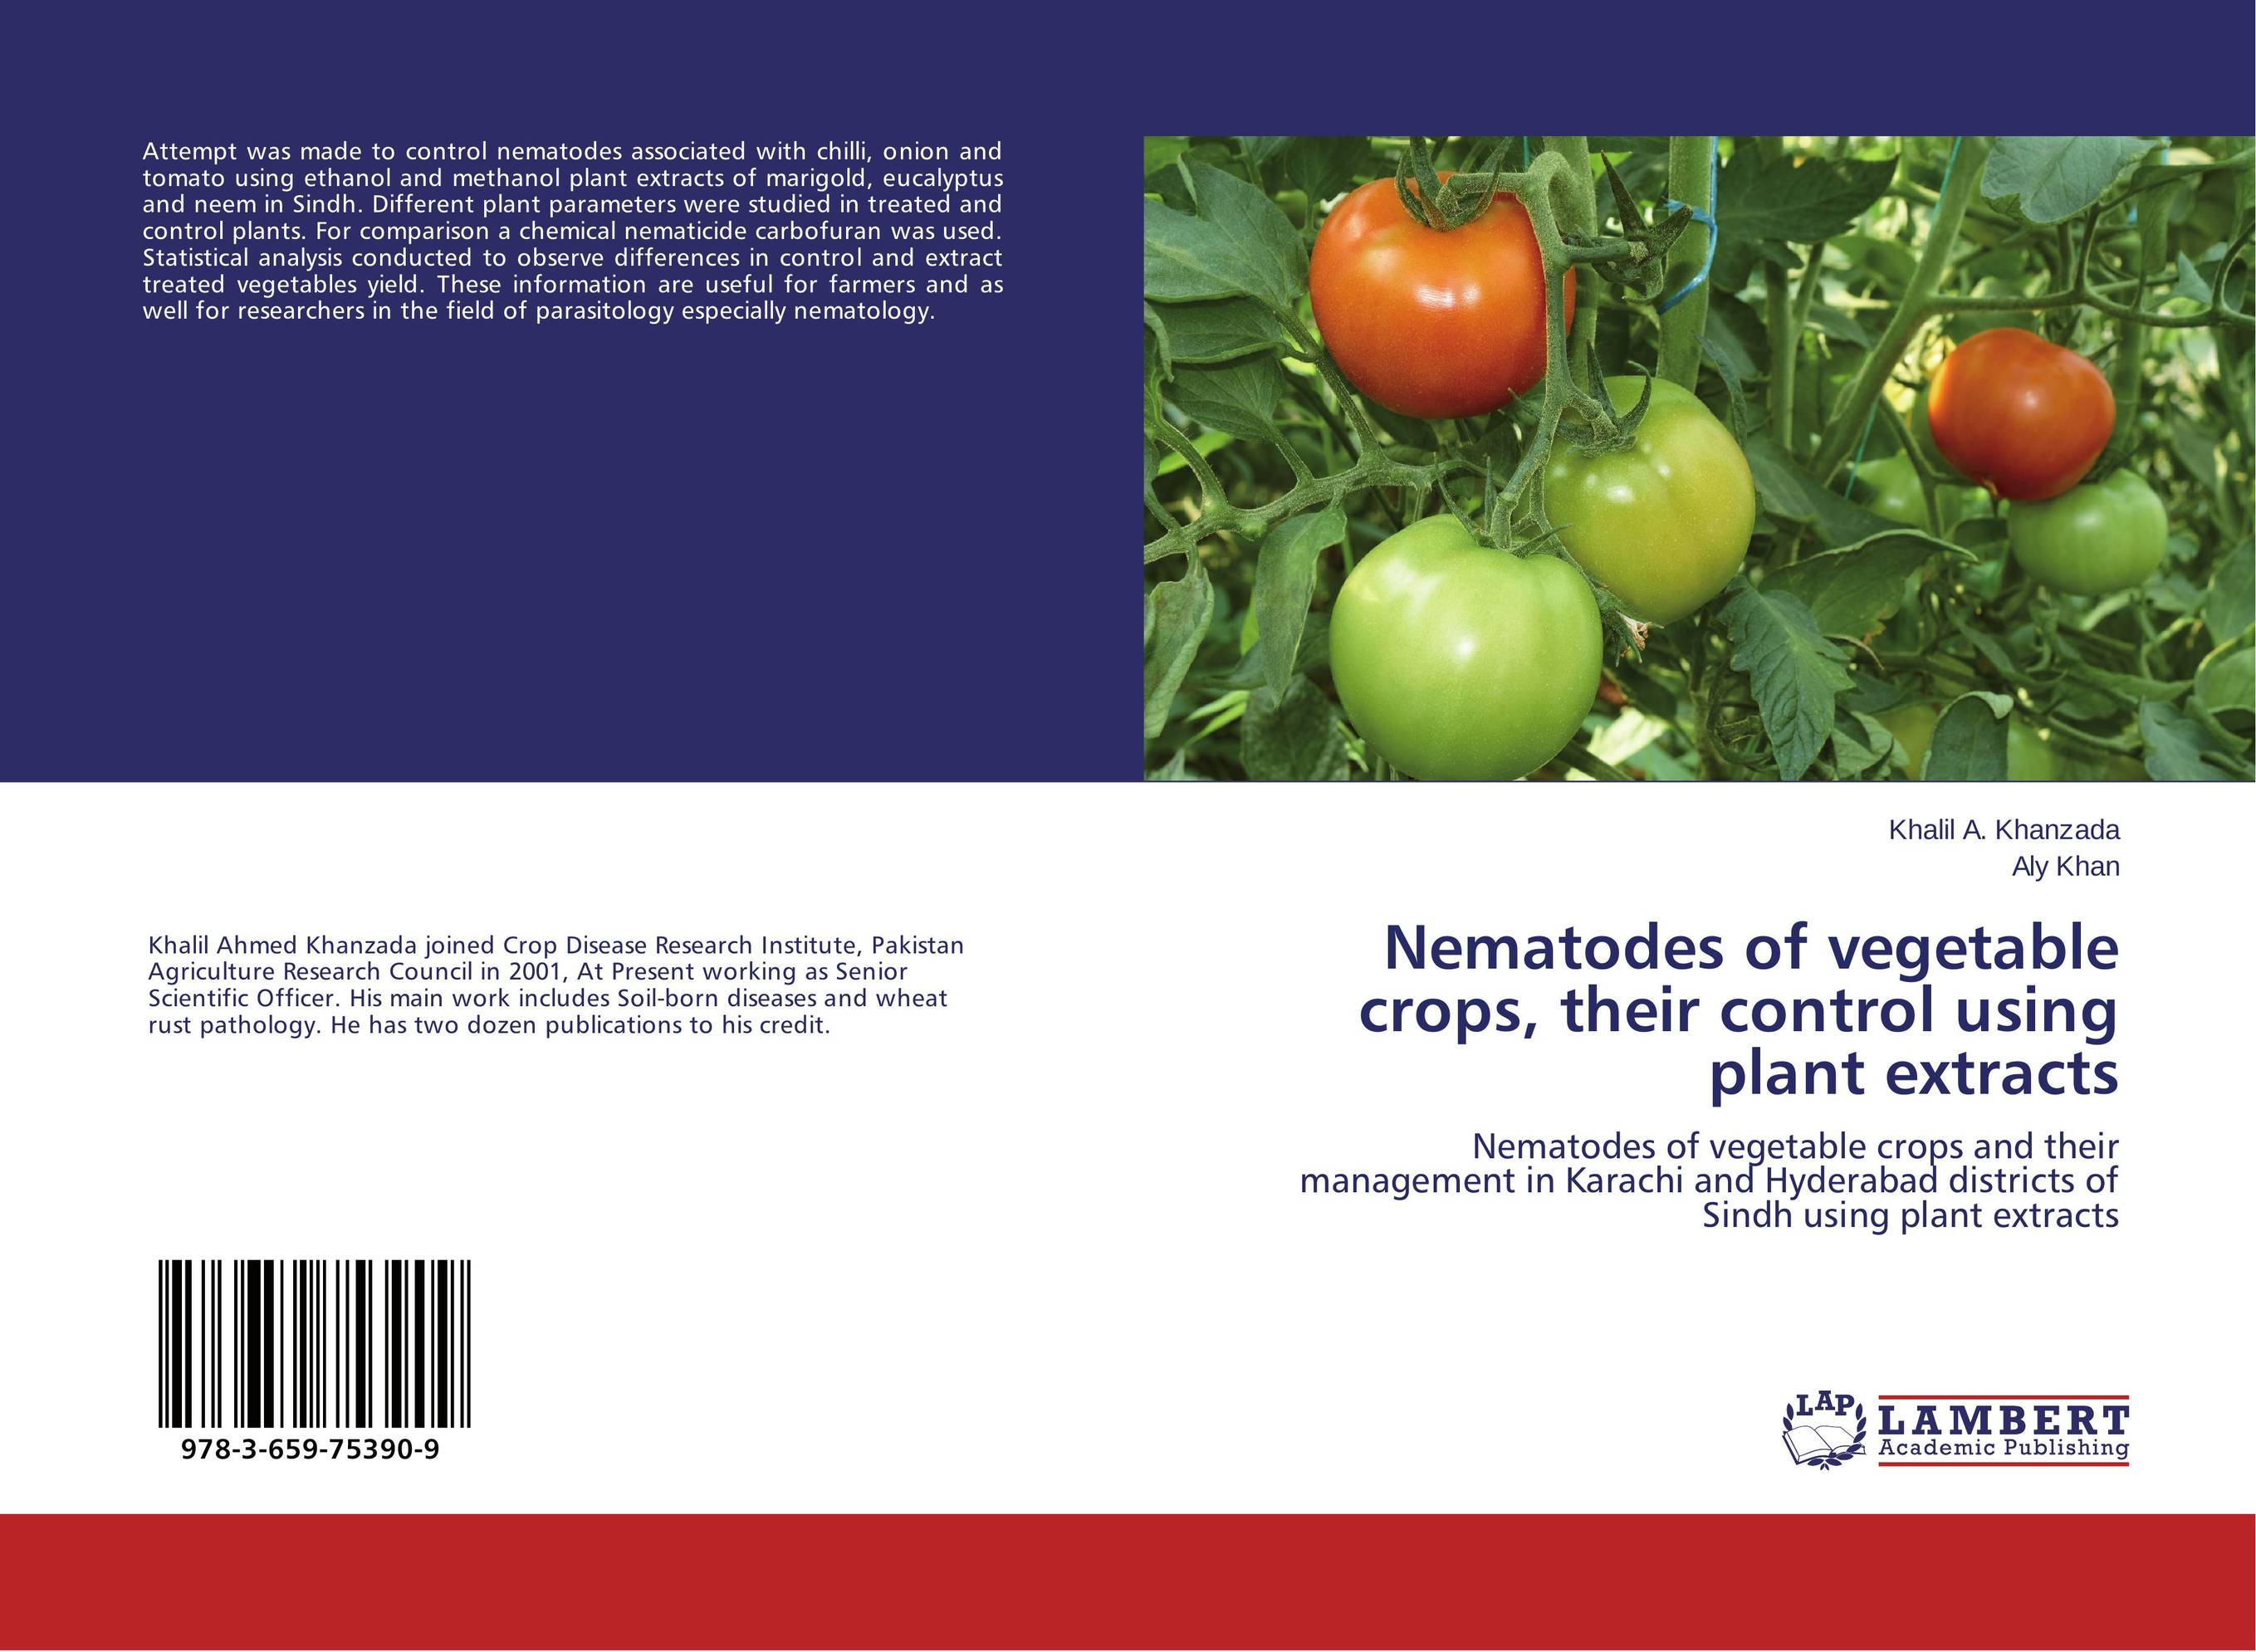 Nematodes of vegetable crops, their control using plant extracts nematodes associated with maize and their control